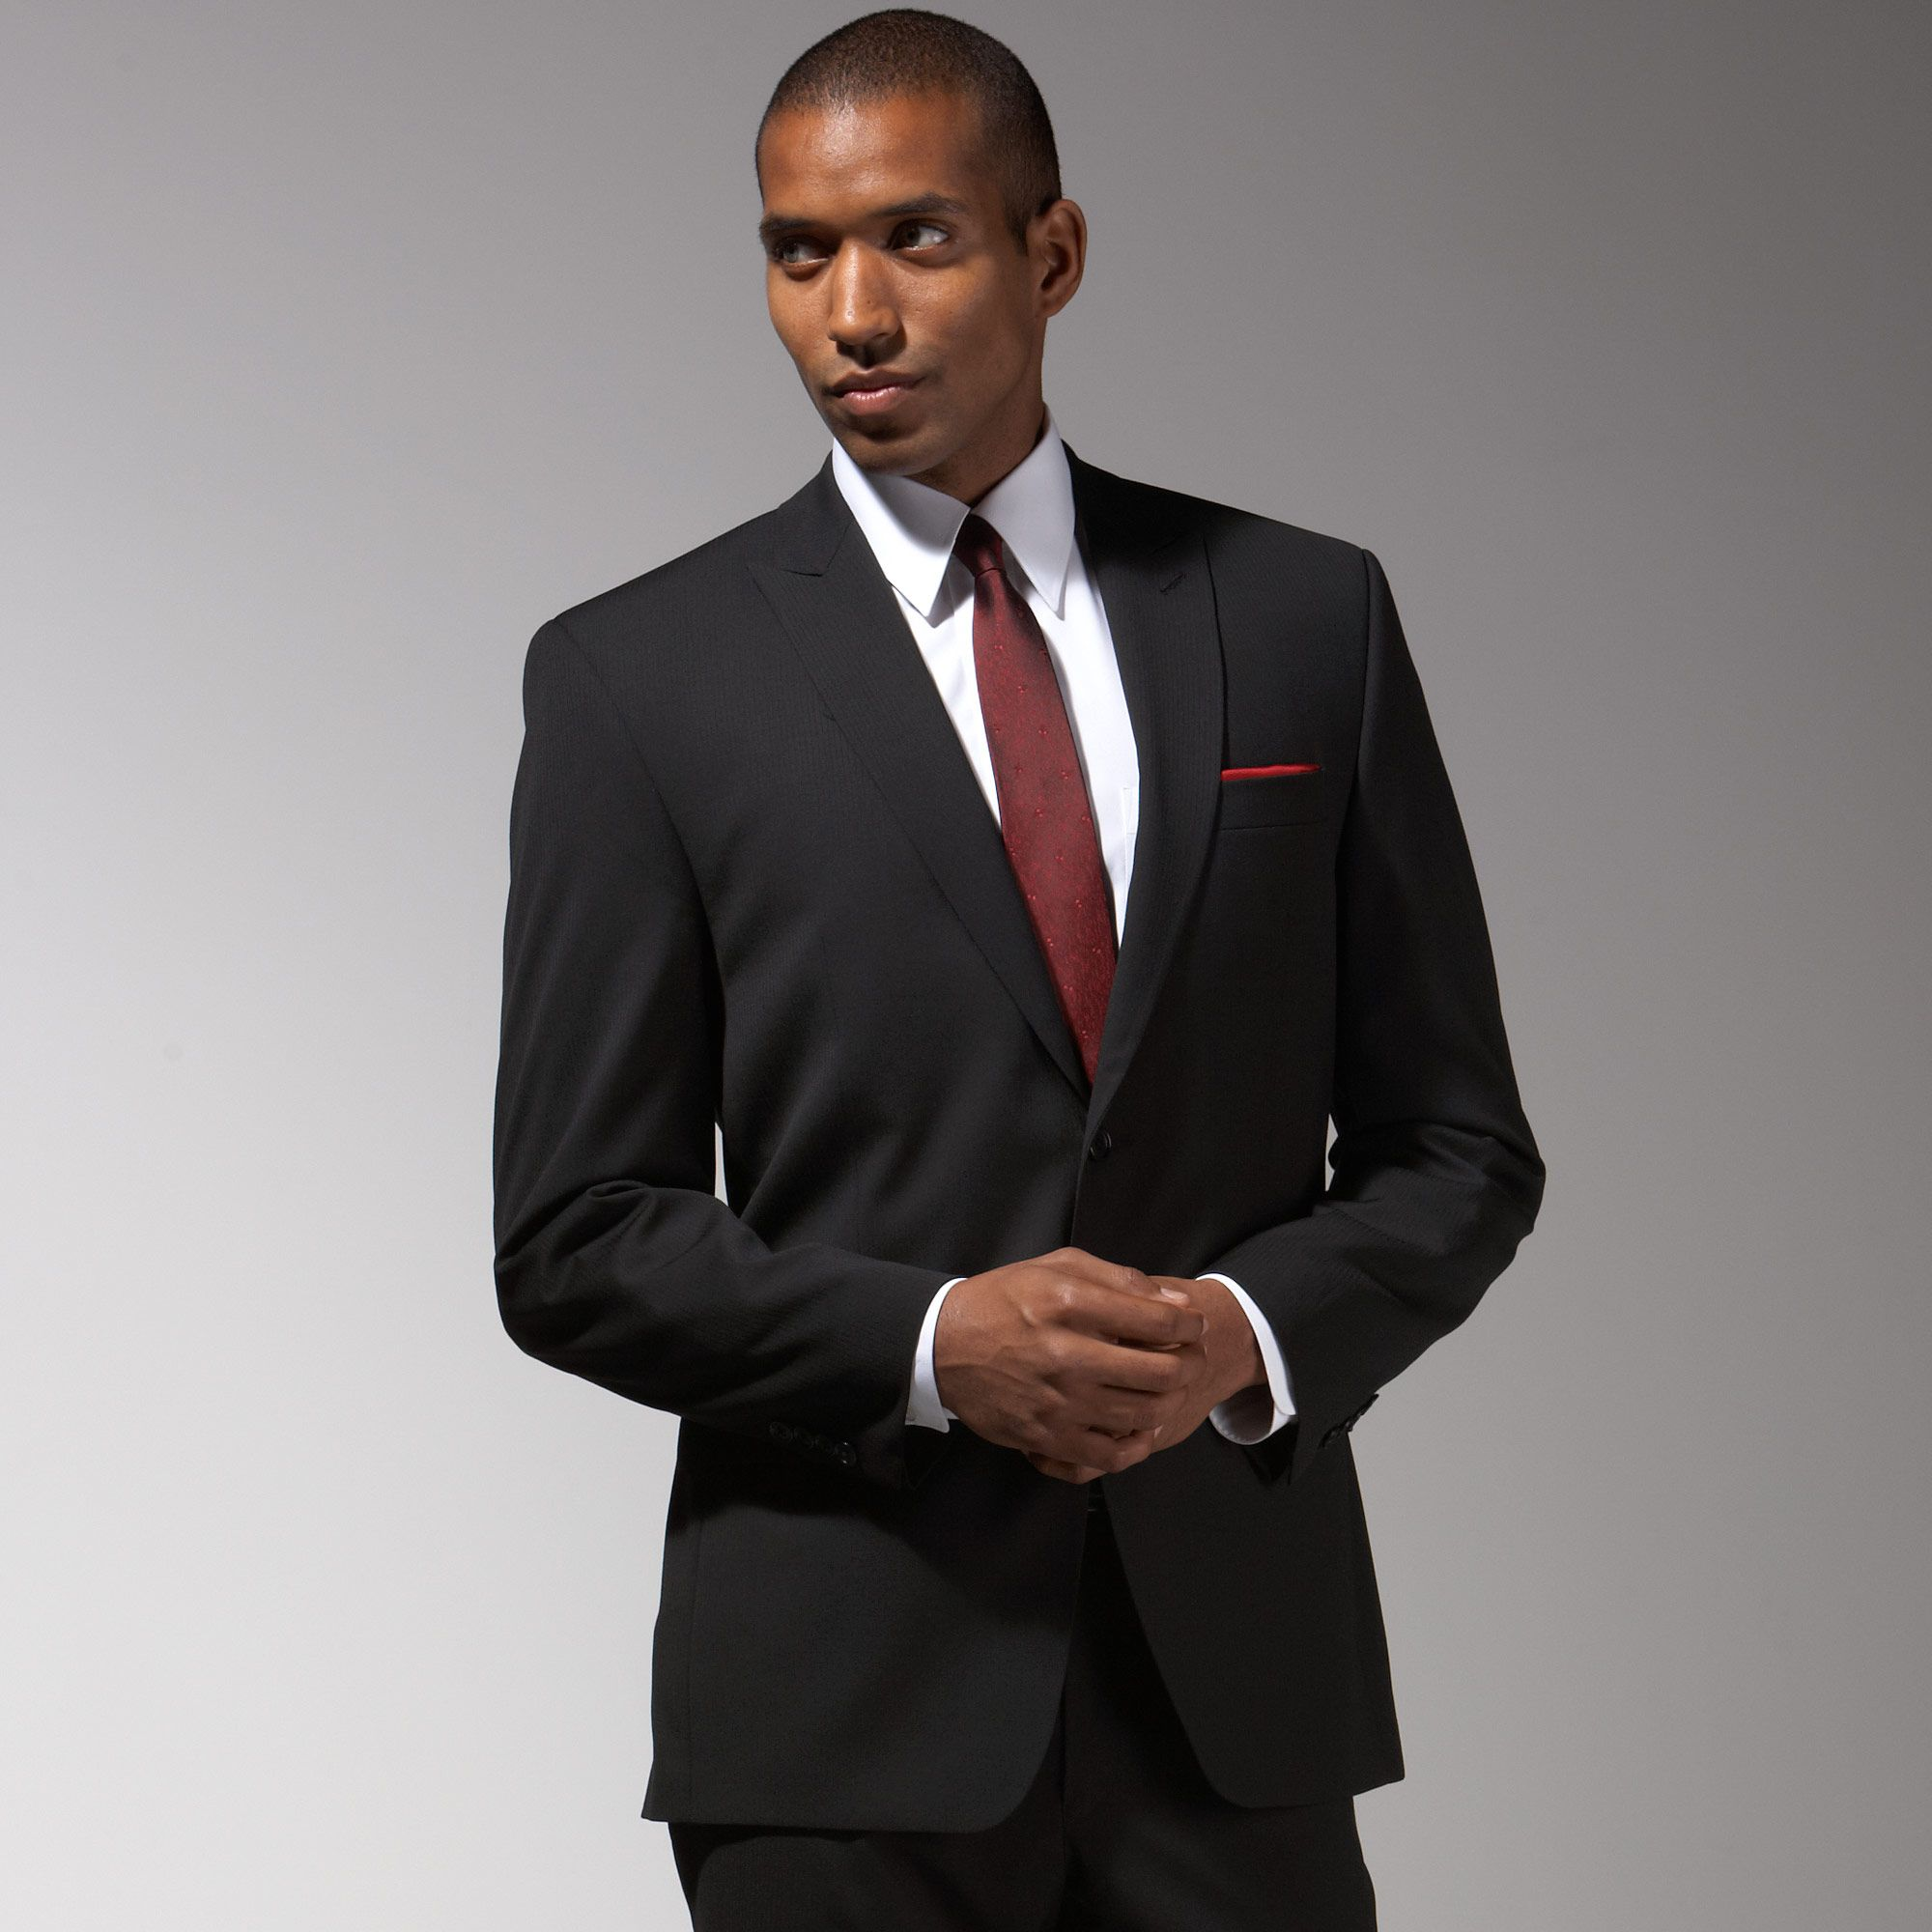 For Men: Everyone Looks Good In A Suit